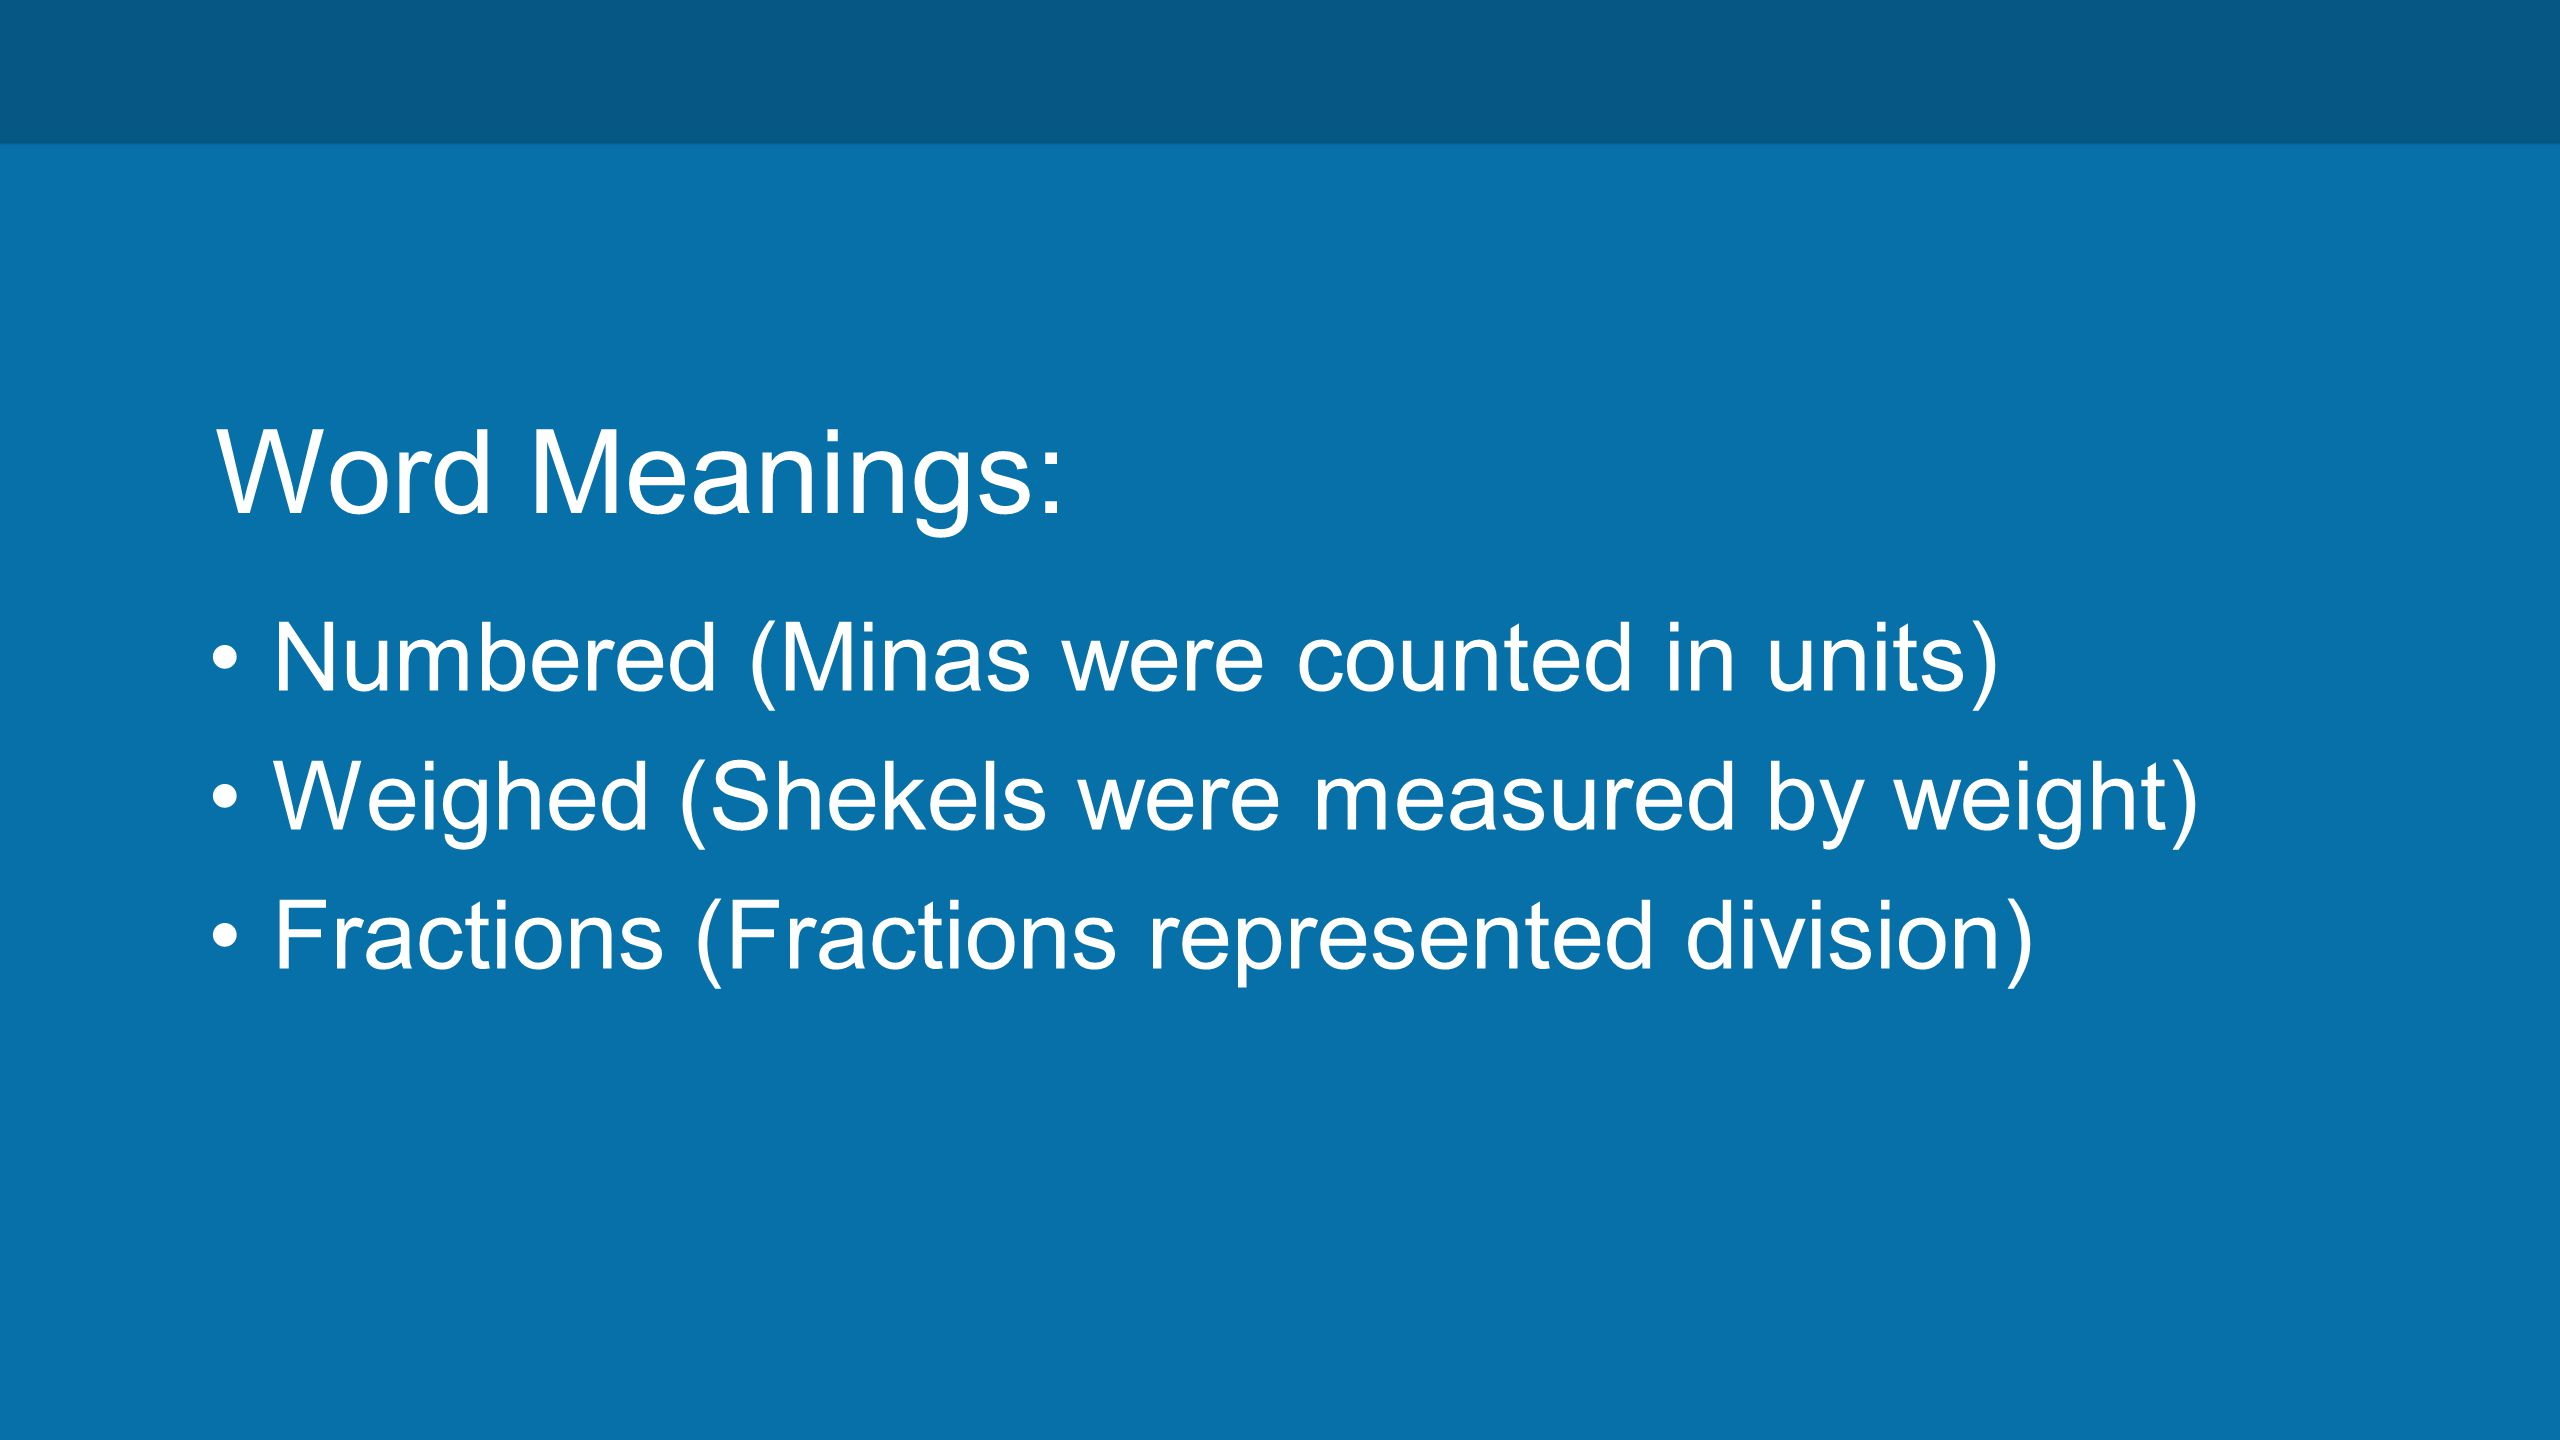 Word Meanings: Numbered (Minas were counted in units) Weighed (Shekels were measured by weight) Fractions (Fractions represented division)